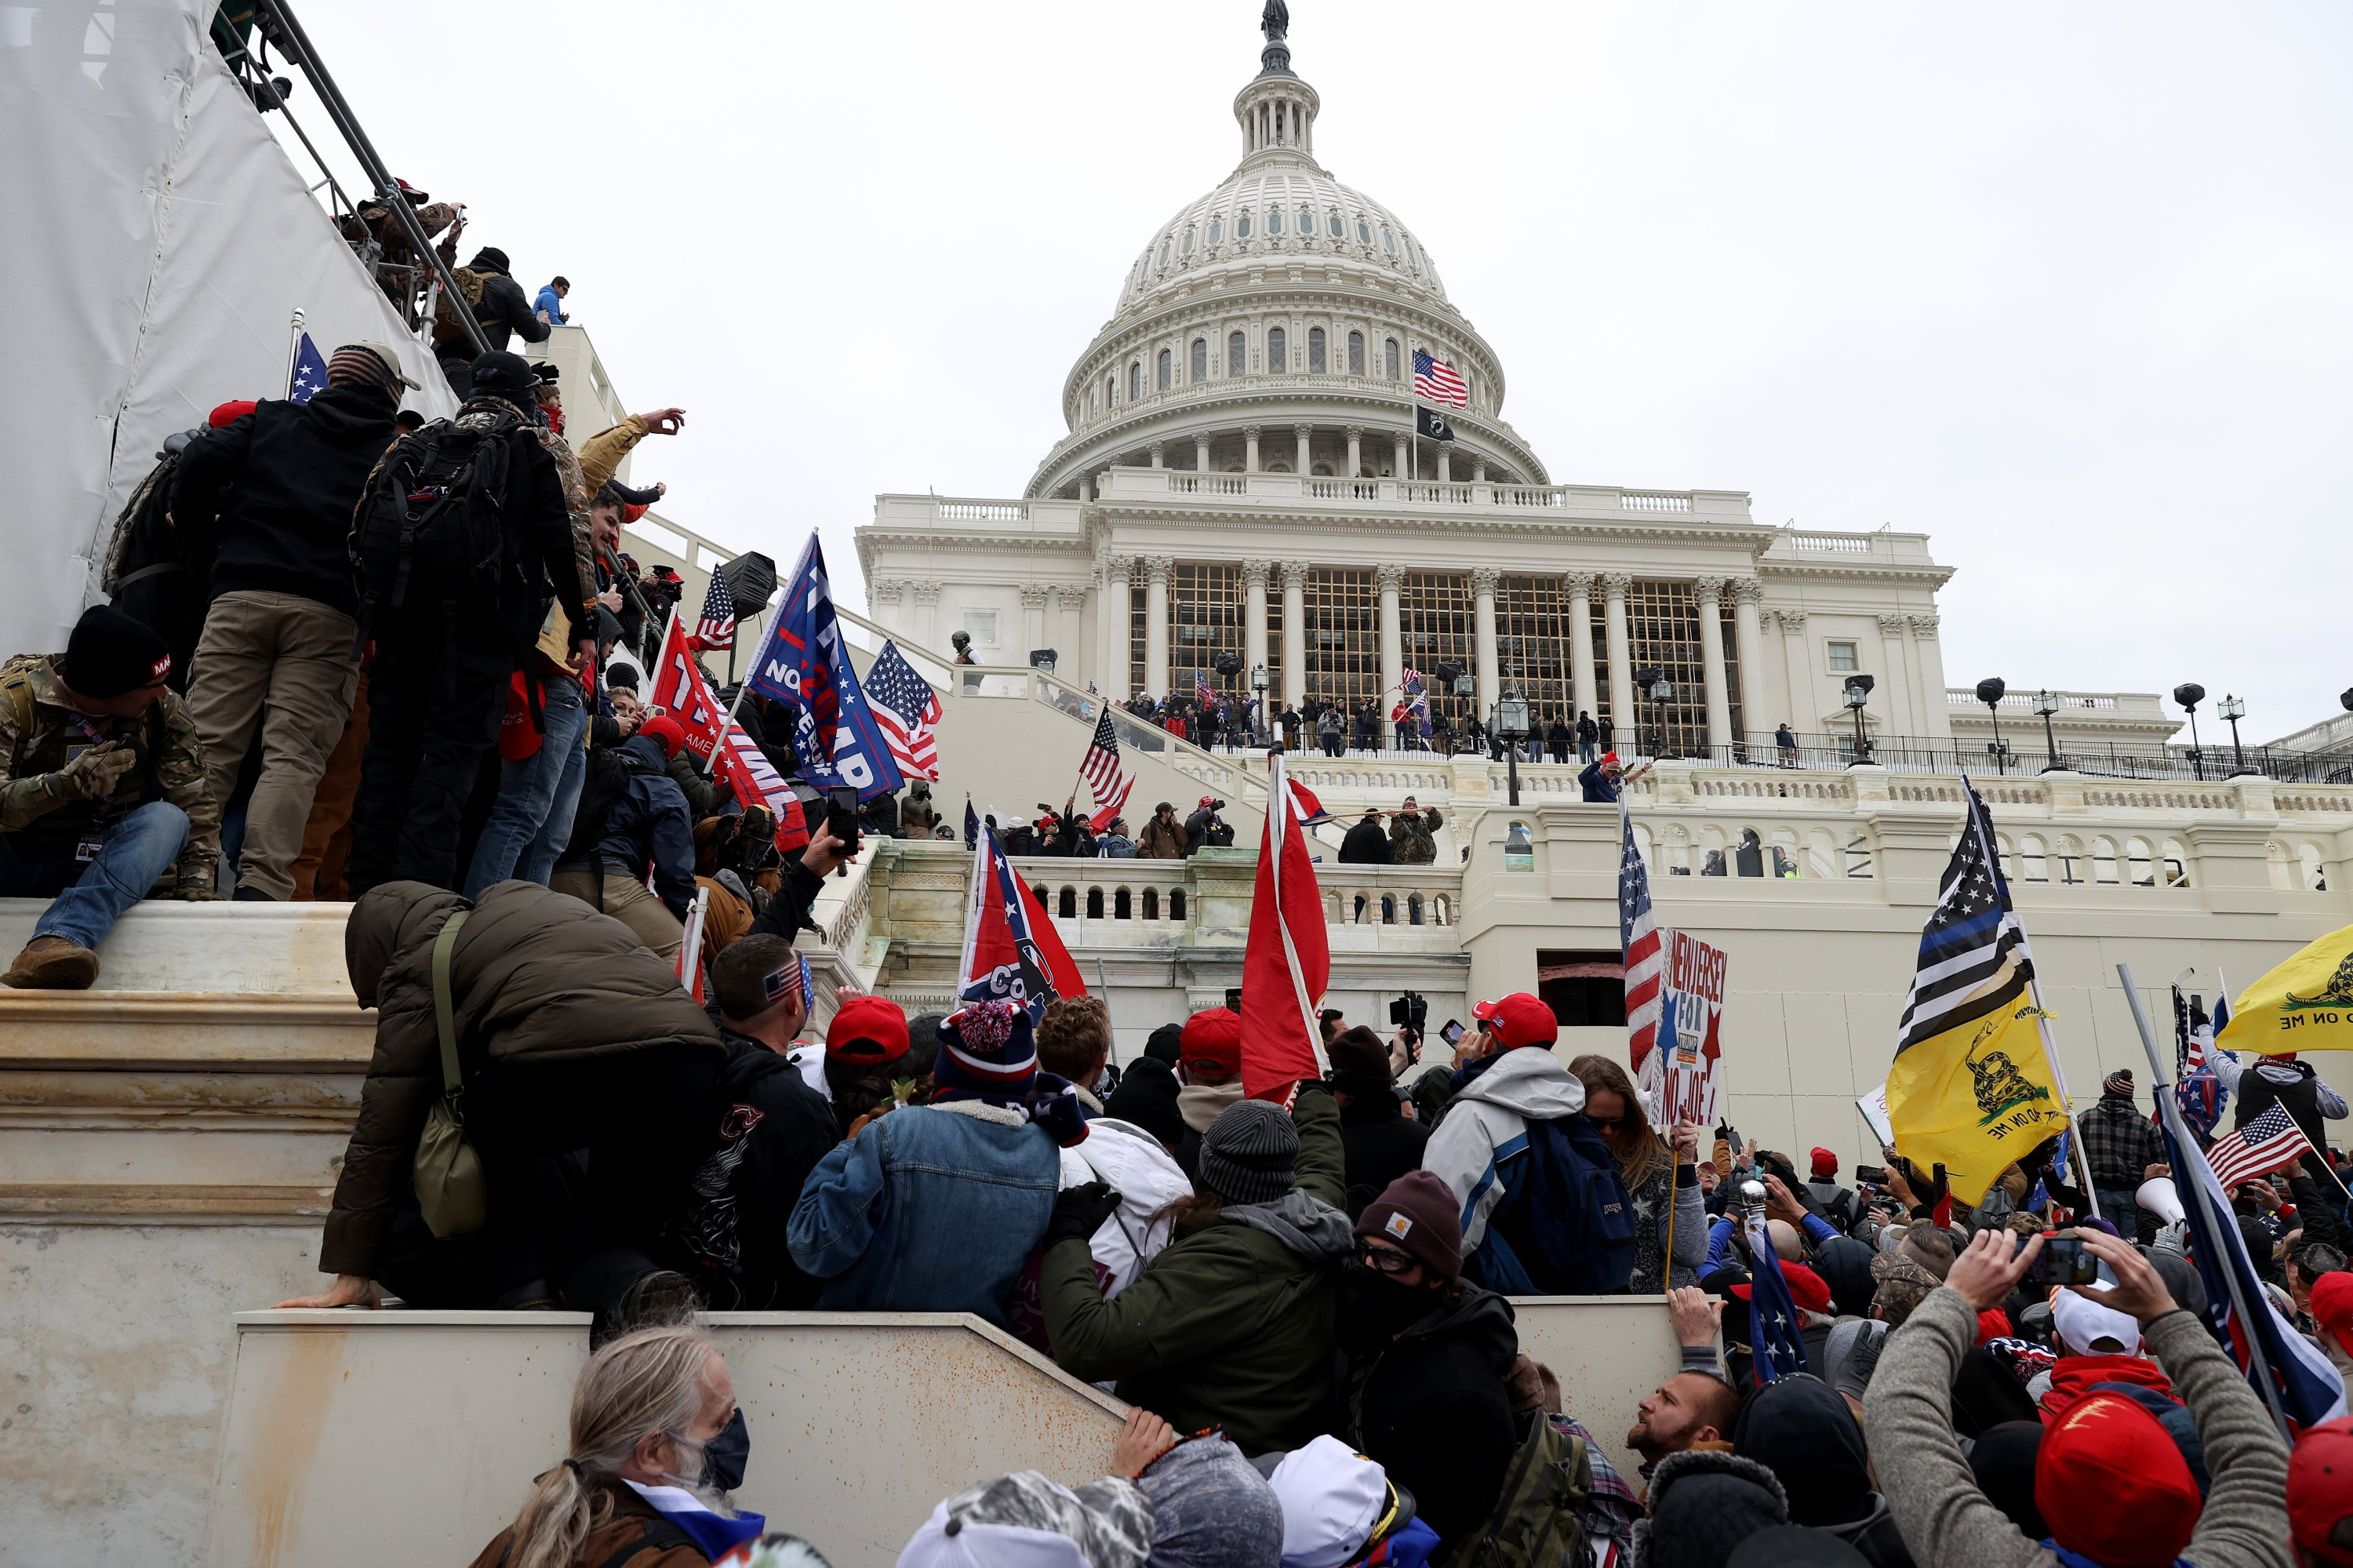 Pro-Trump protesters gather outside the U.S. Capitol Building, Washington, D.C., U.S., Jan. 6, 2021. (Photo by Getty Images)